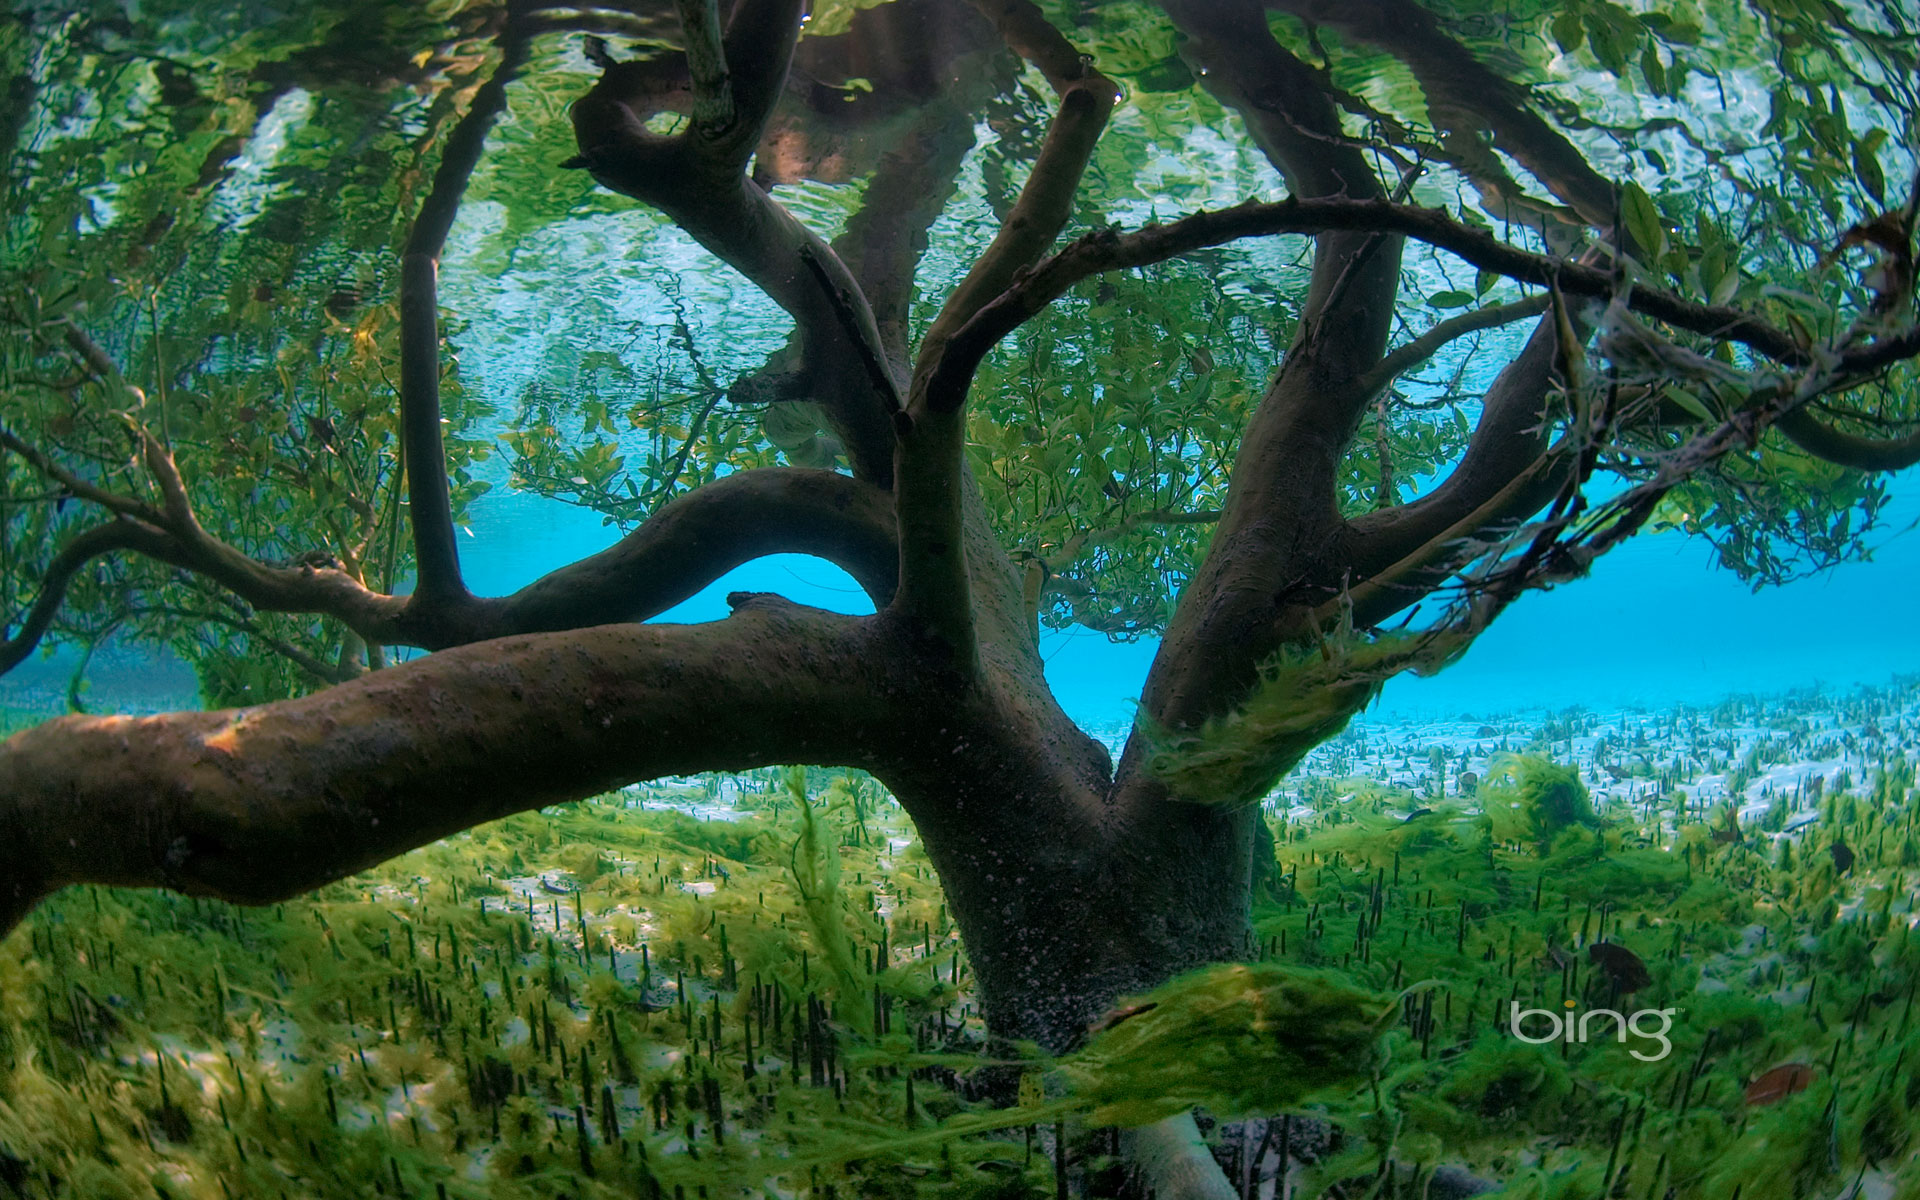 Mangrove seen from underwater, Aldabra, Seychelles